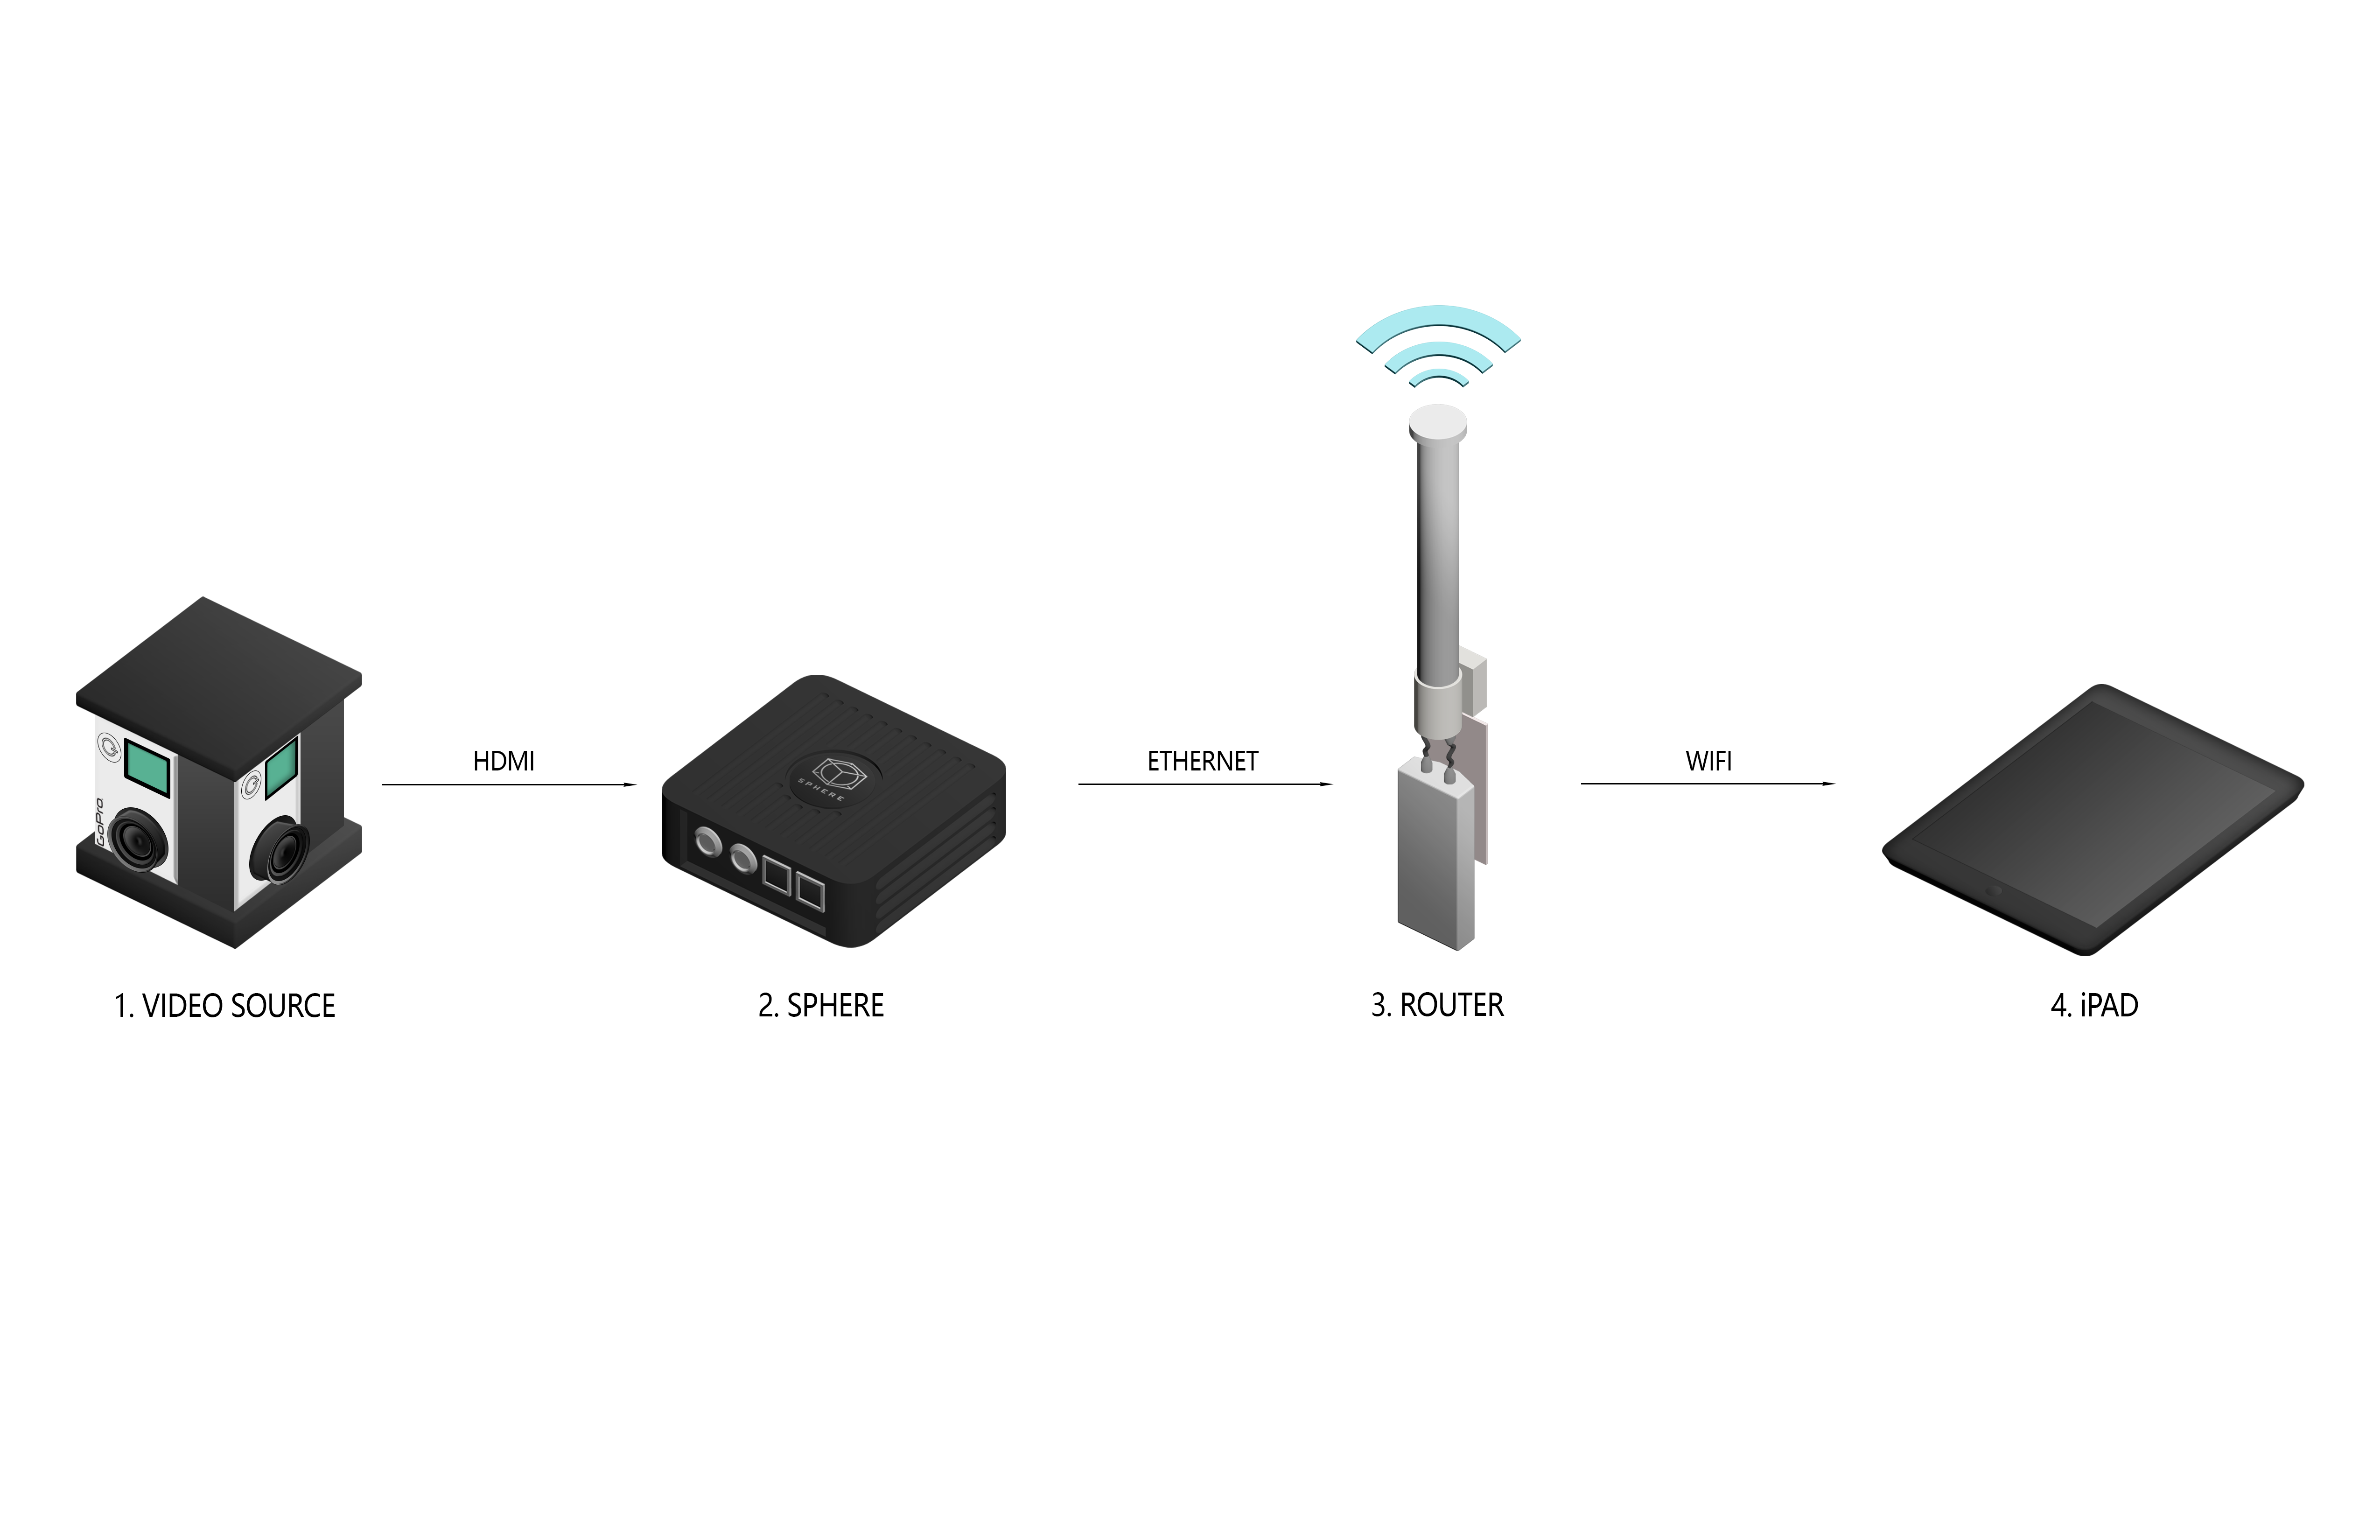 Sphere Wireless Basics Monitoring Teradek Gopro Usb Wiring Diagram If You Need A More Stable Connection Add Another Ubiquiti Rocket To Serve As Bridge Between The Connected Router And Ipad